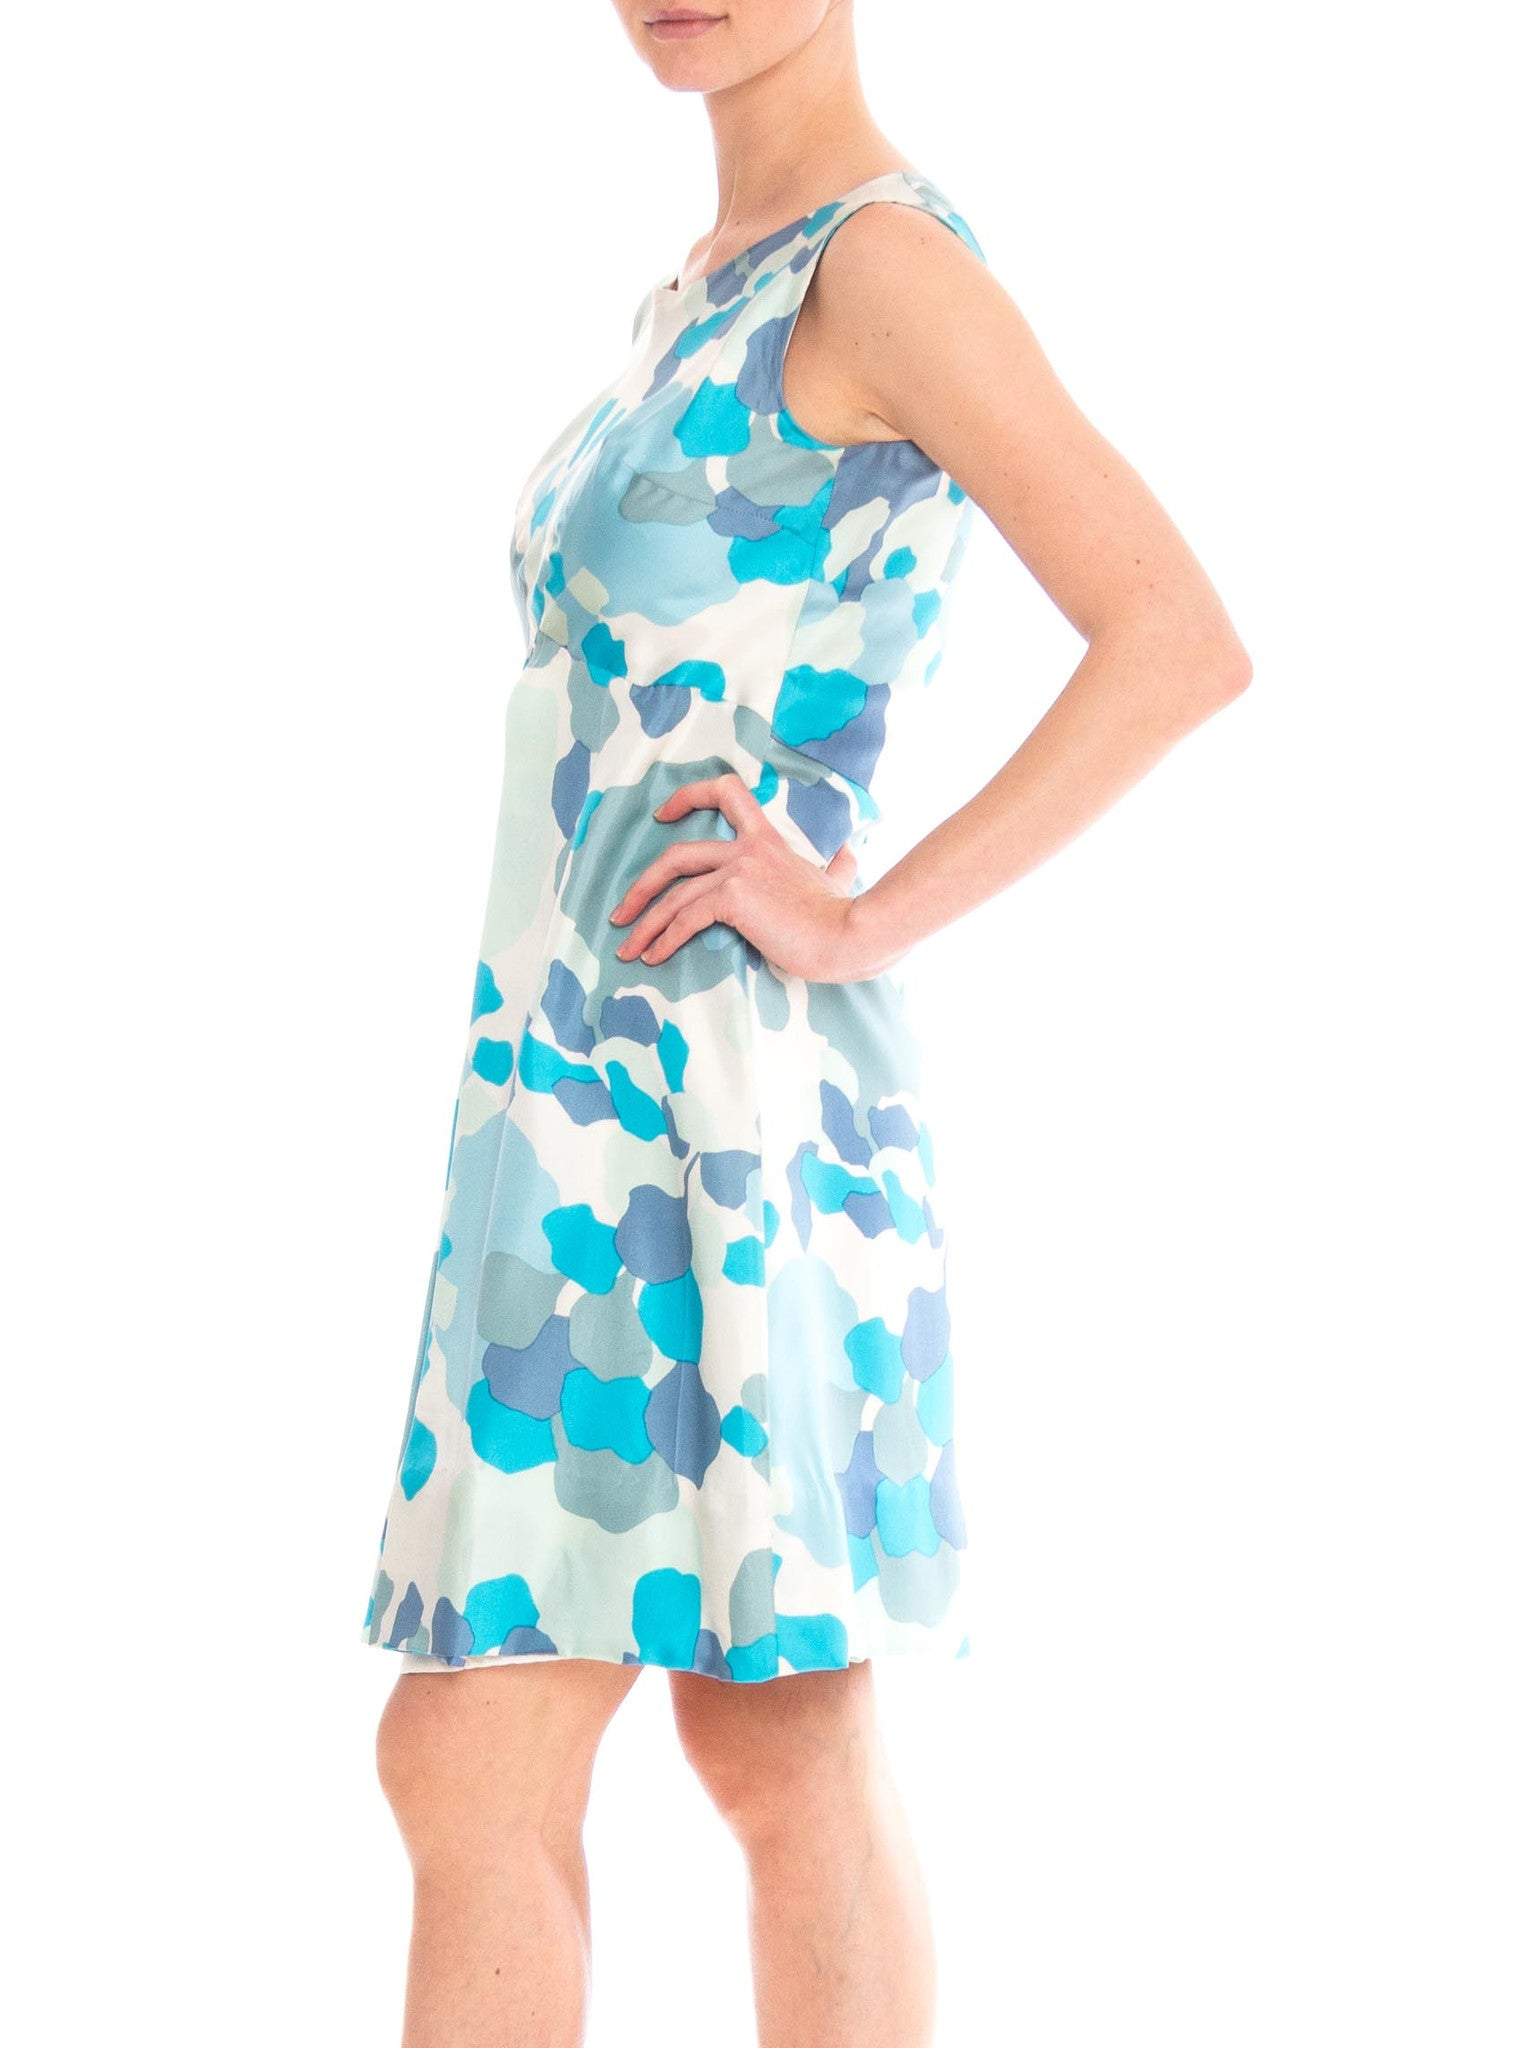 1950S Blue & White Silk Twill Abstract Printed Mod Mini Dress